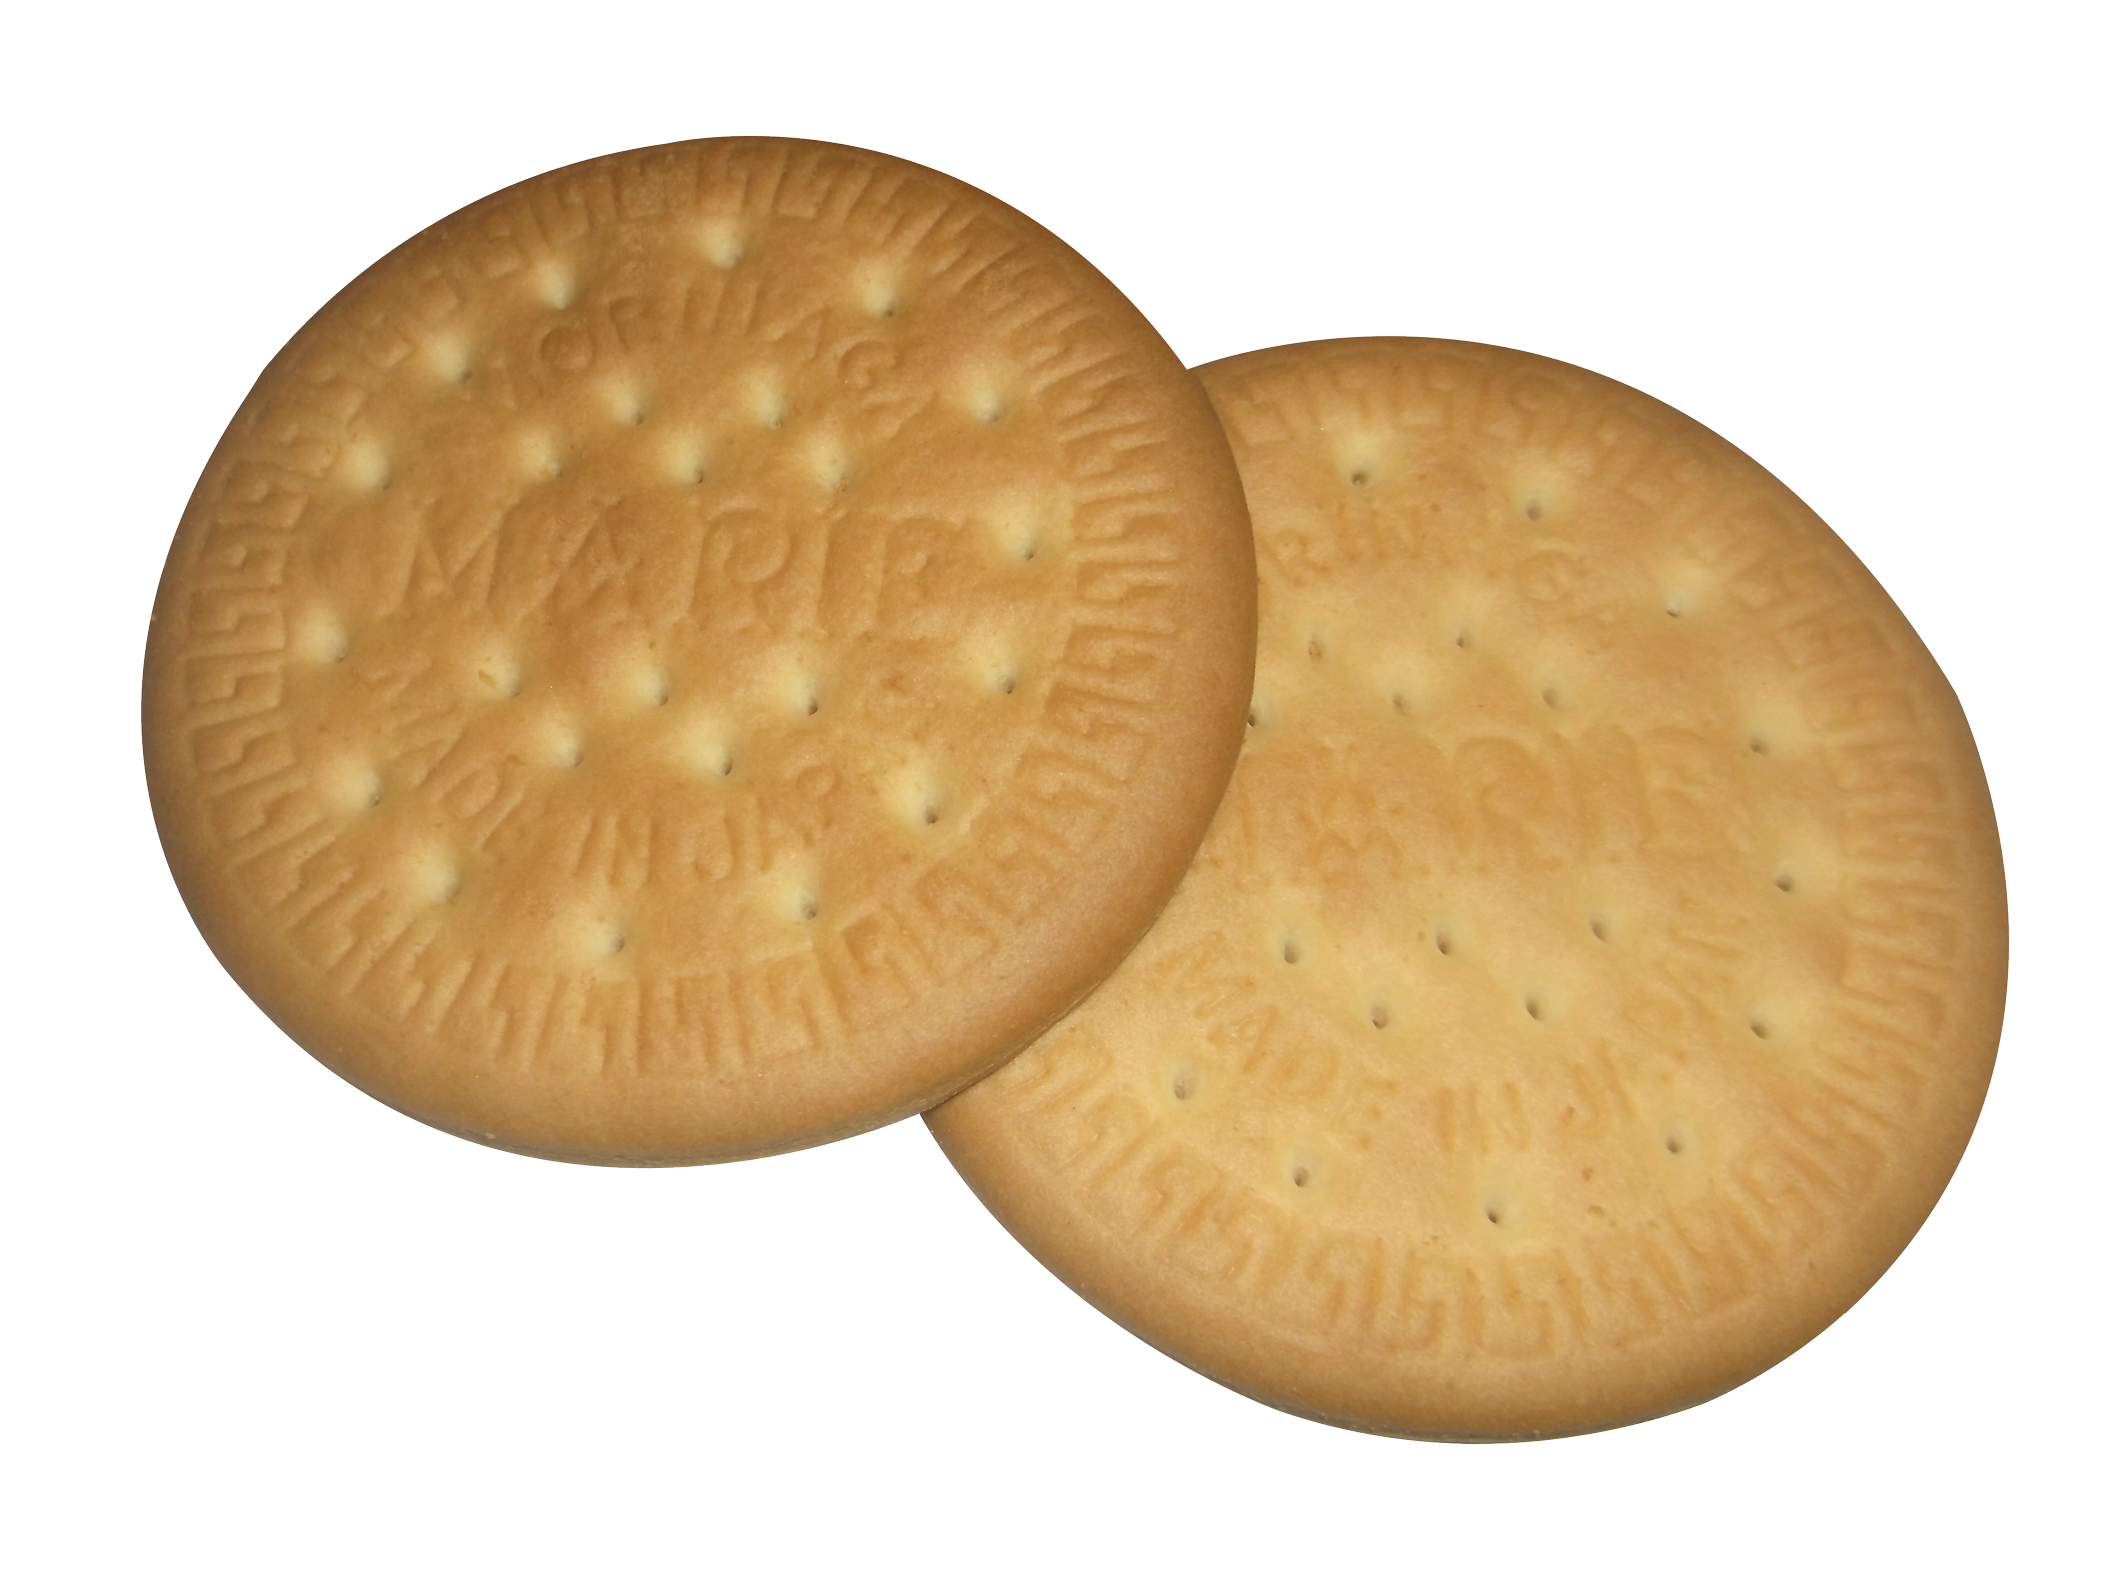 Food clipart cracker. Biscuit png image purepng